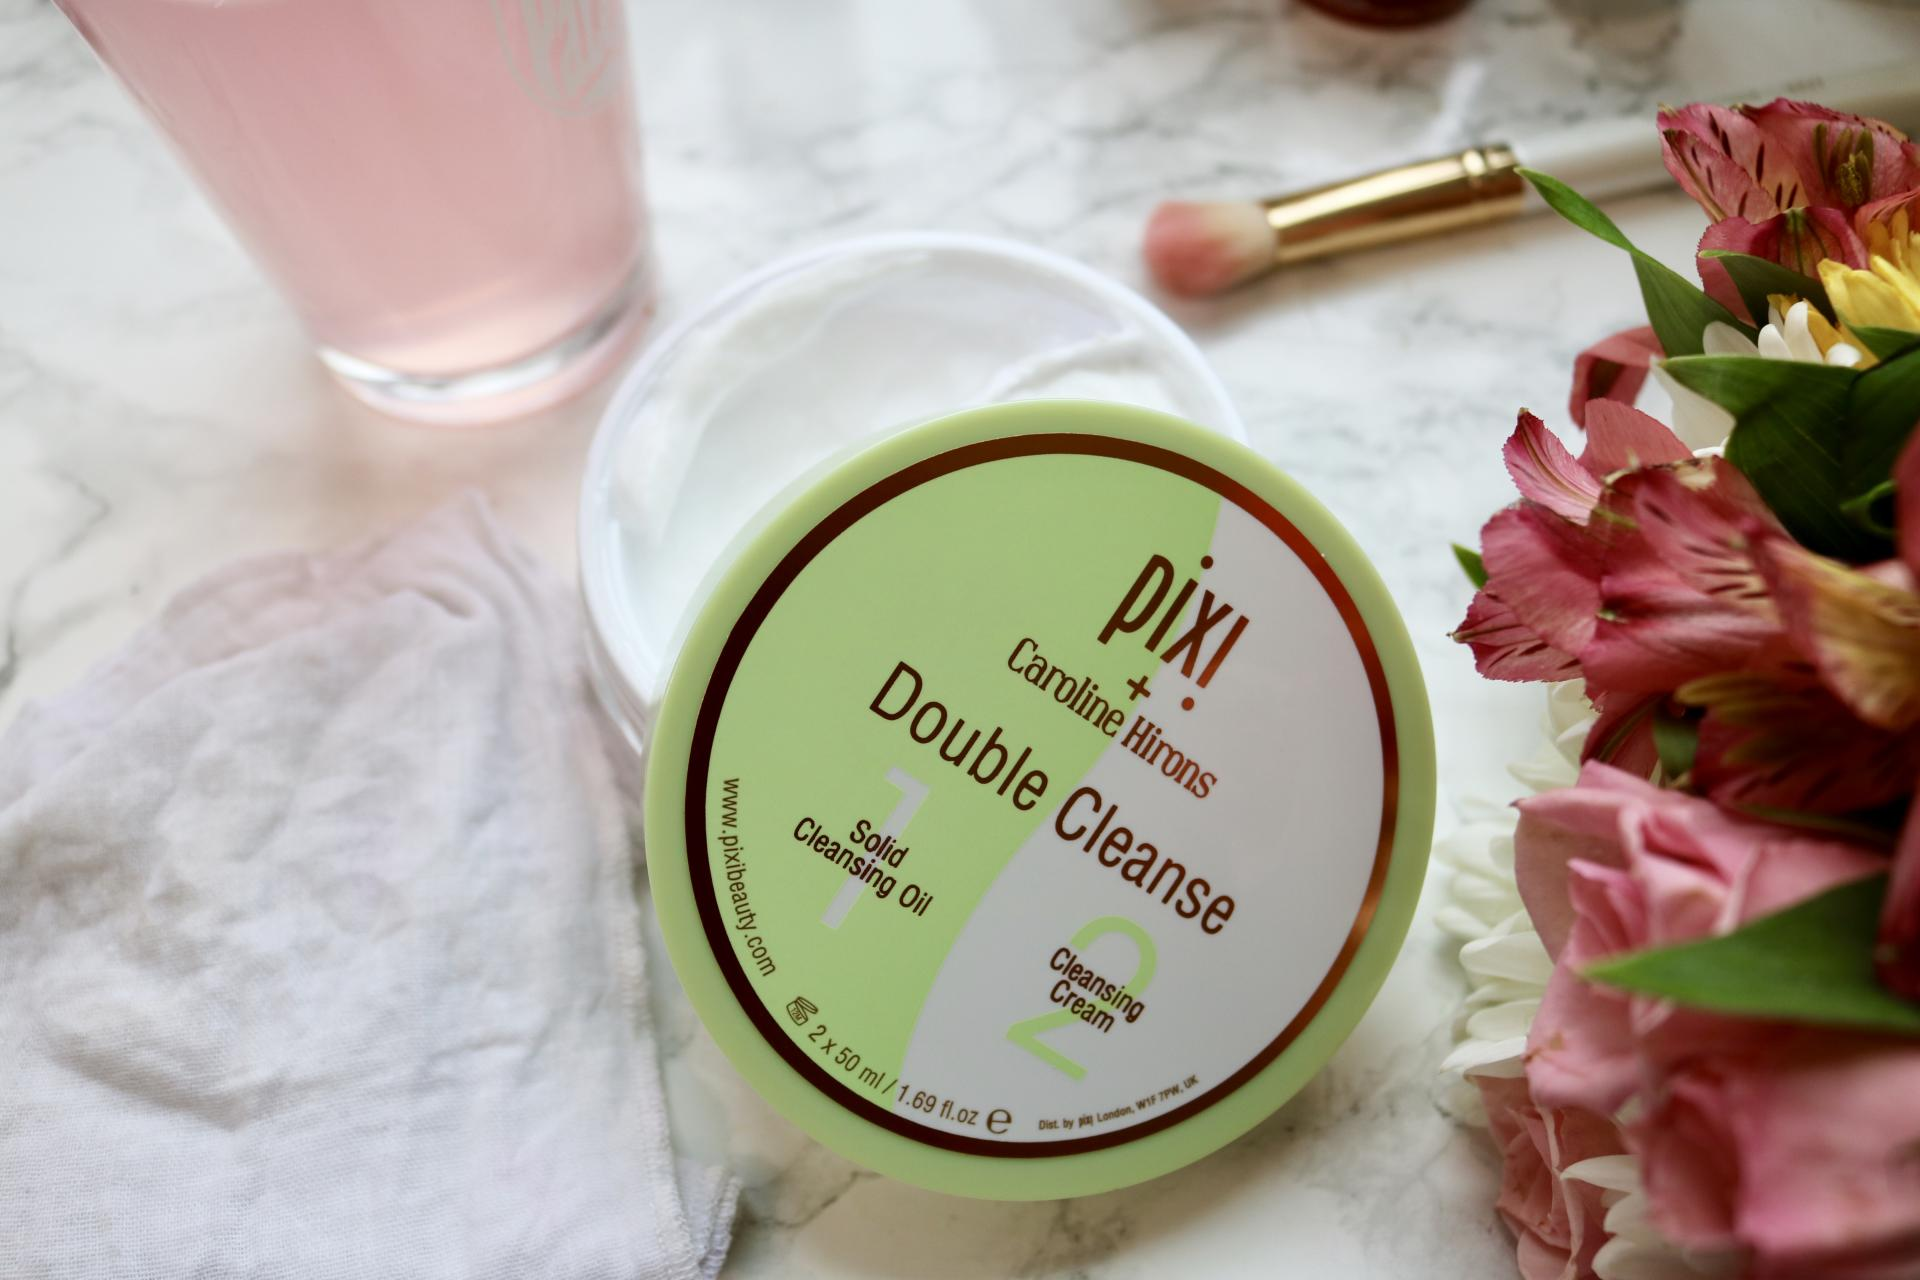 Pixi x Caroline Hirons Double Cleanse Review | Katie Actually